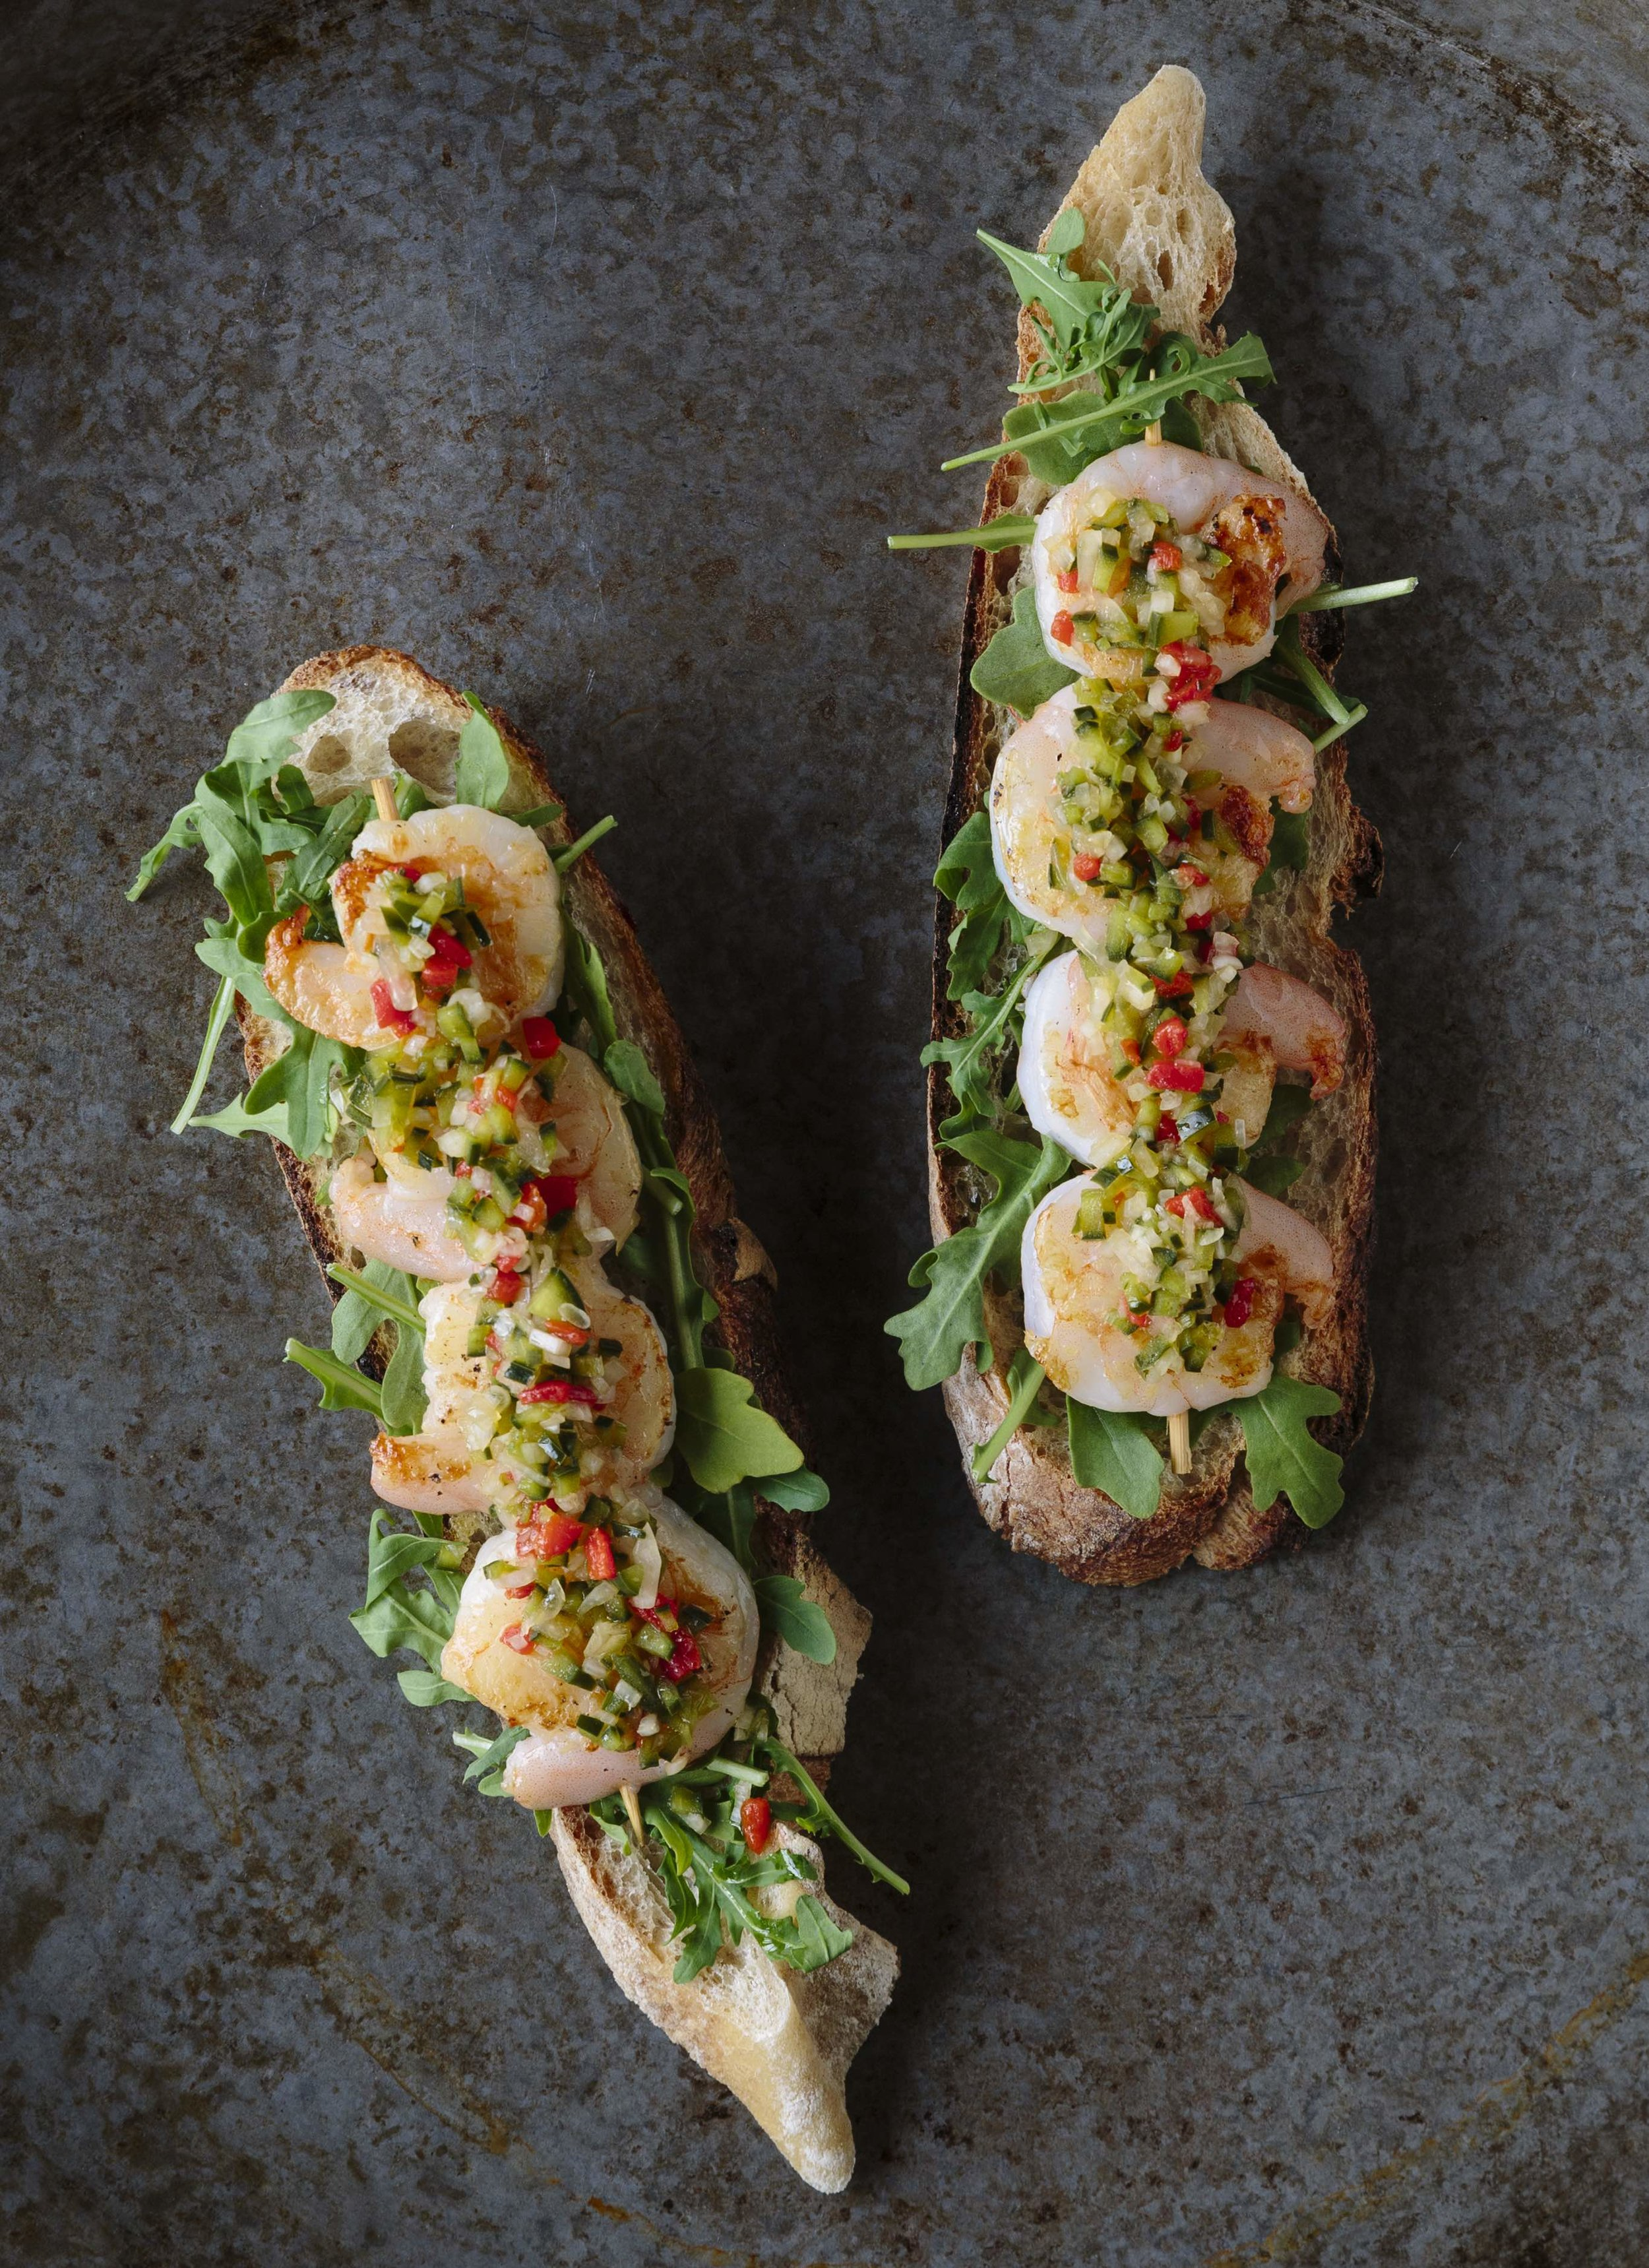 Flatbread with shrimp and toppings